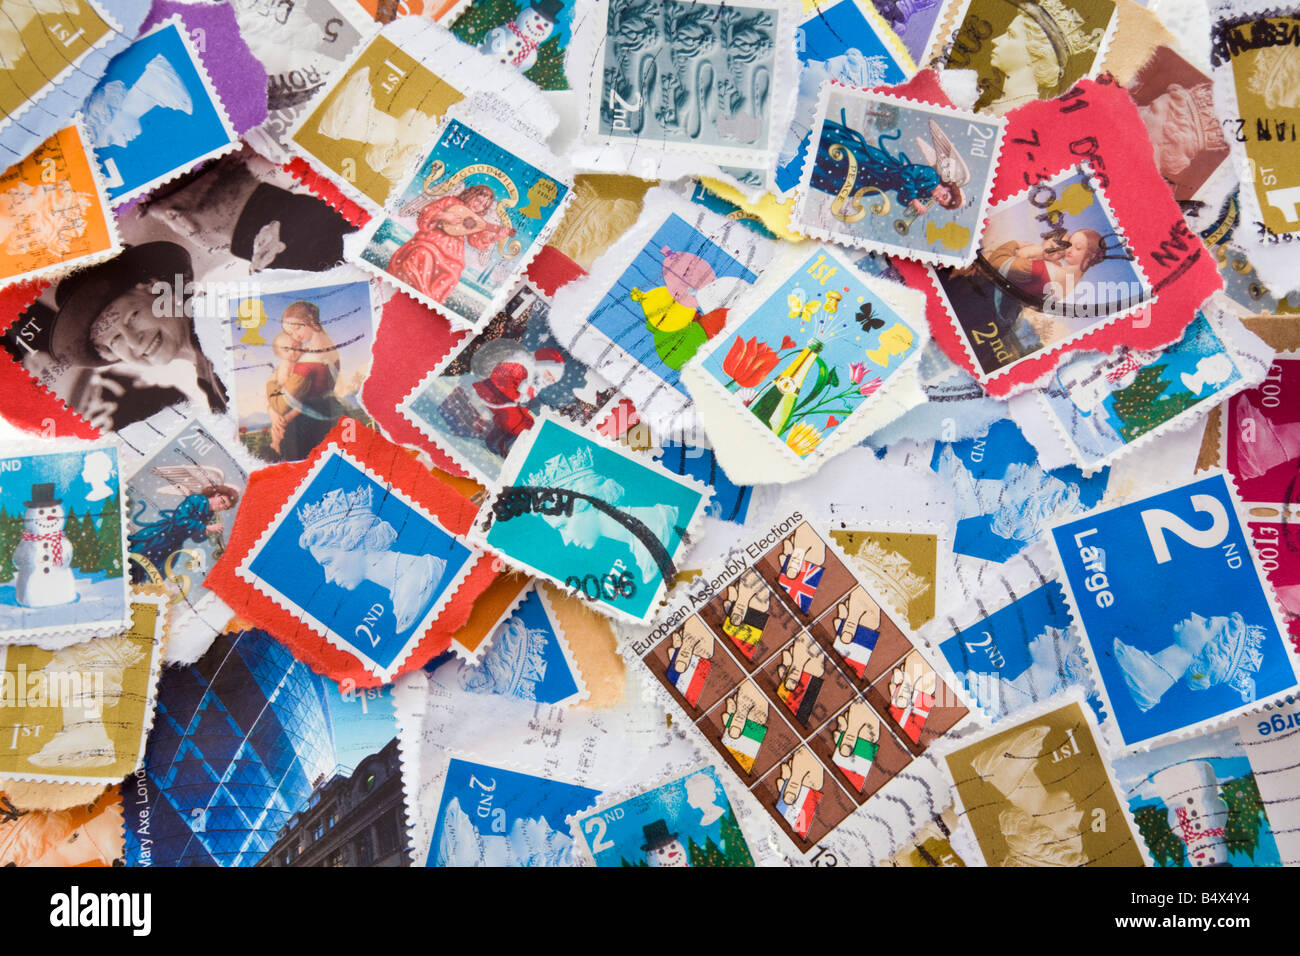 A colourful selection of various used British Royal Mail postage stamps in close-up. England UK Britain - Stock Image